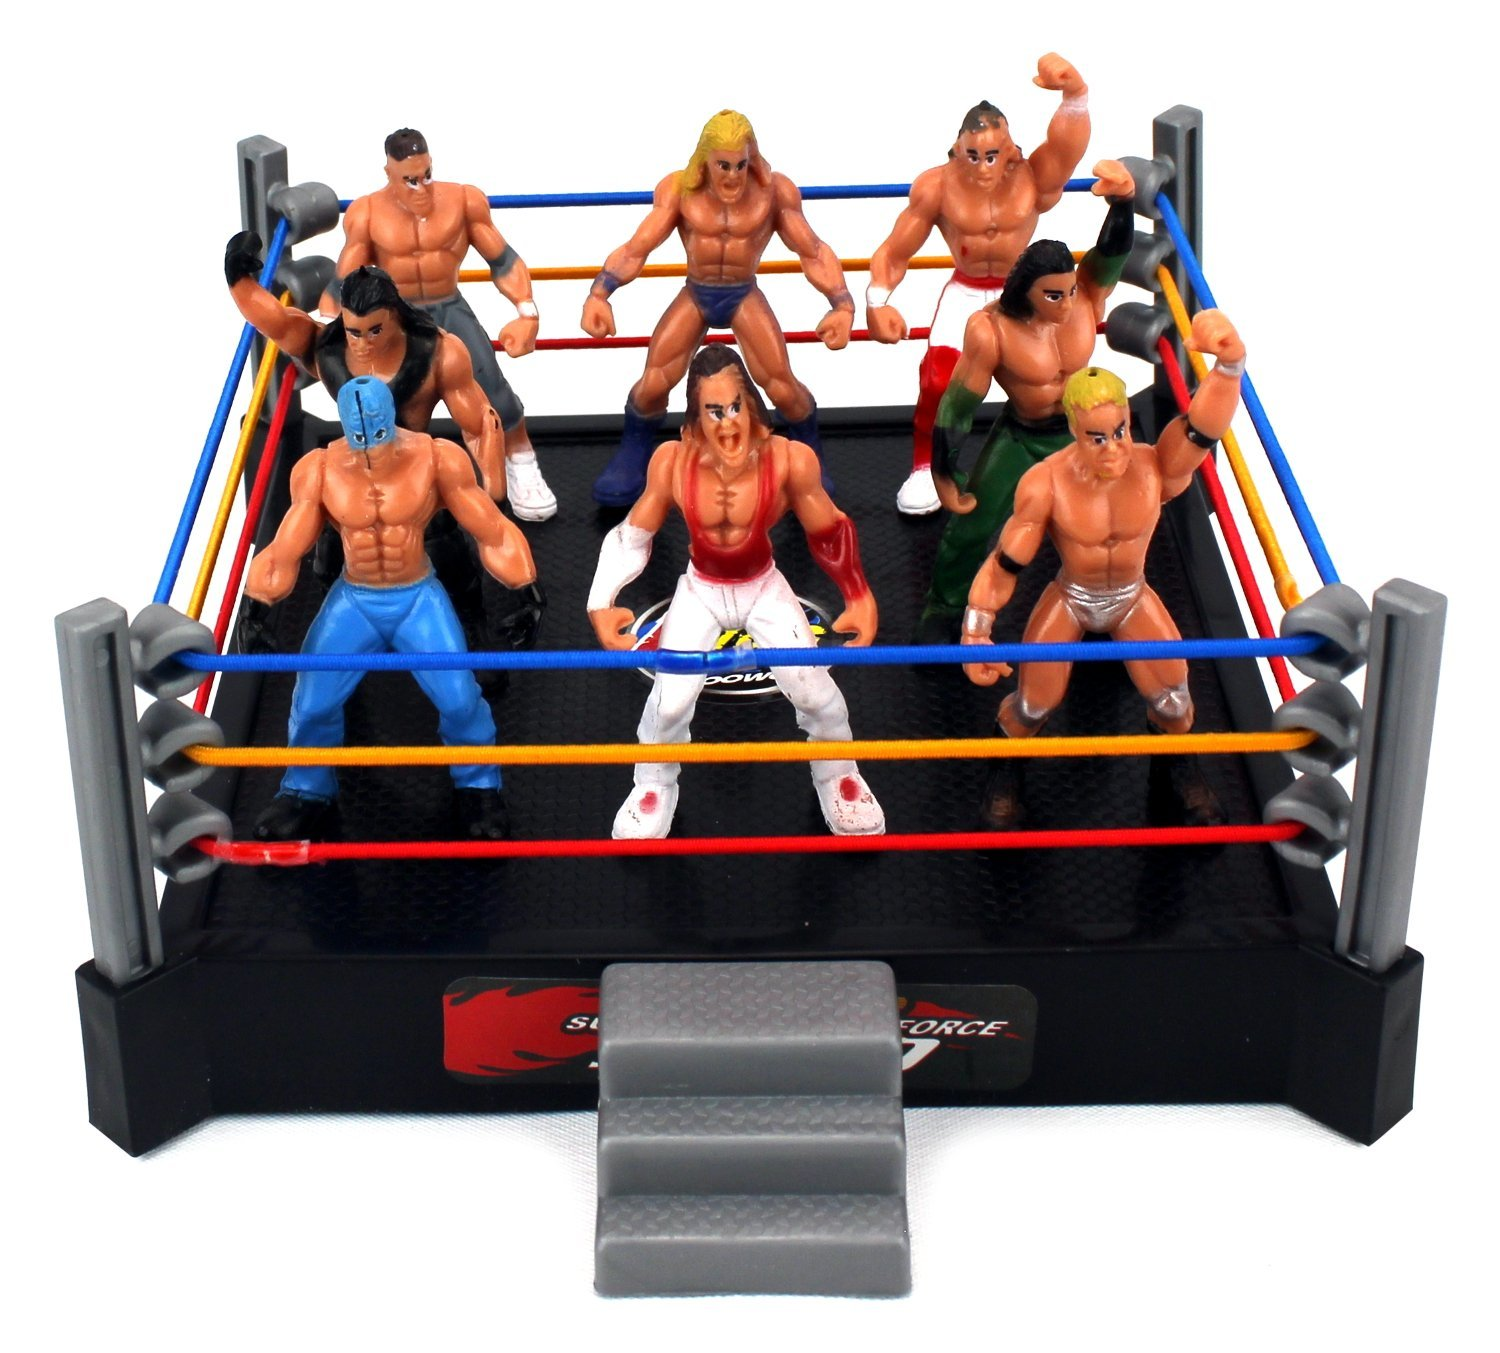 VT Mini Combat Action Wrestling Toy Figure Play Set w/ Ring, 8 Toy Figures